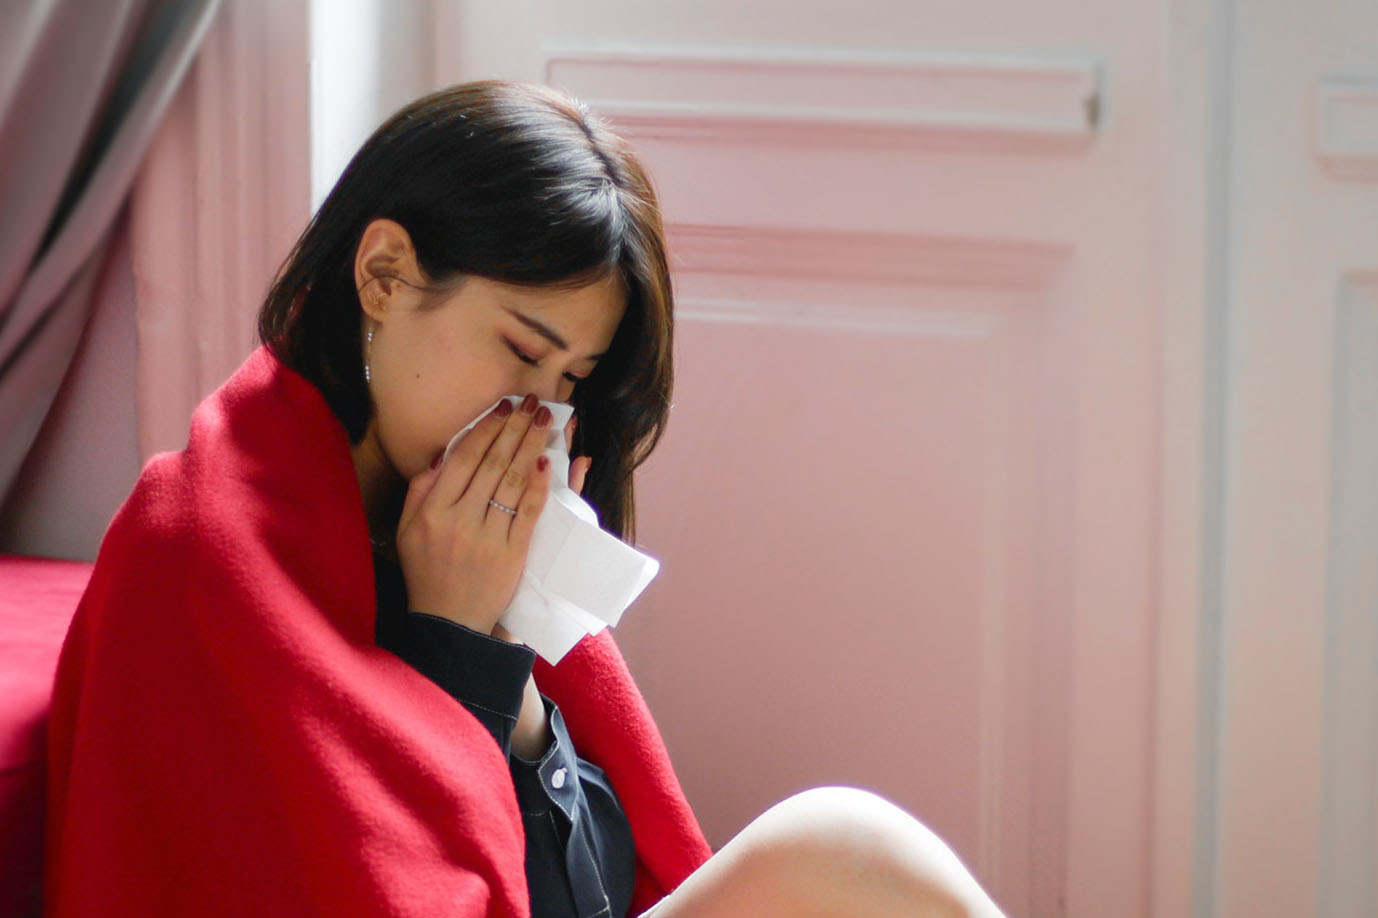 Down With A Flu or Having Allergic Rhinitis?